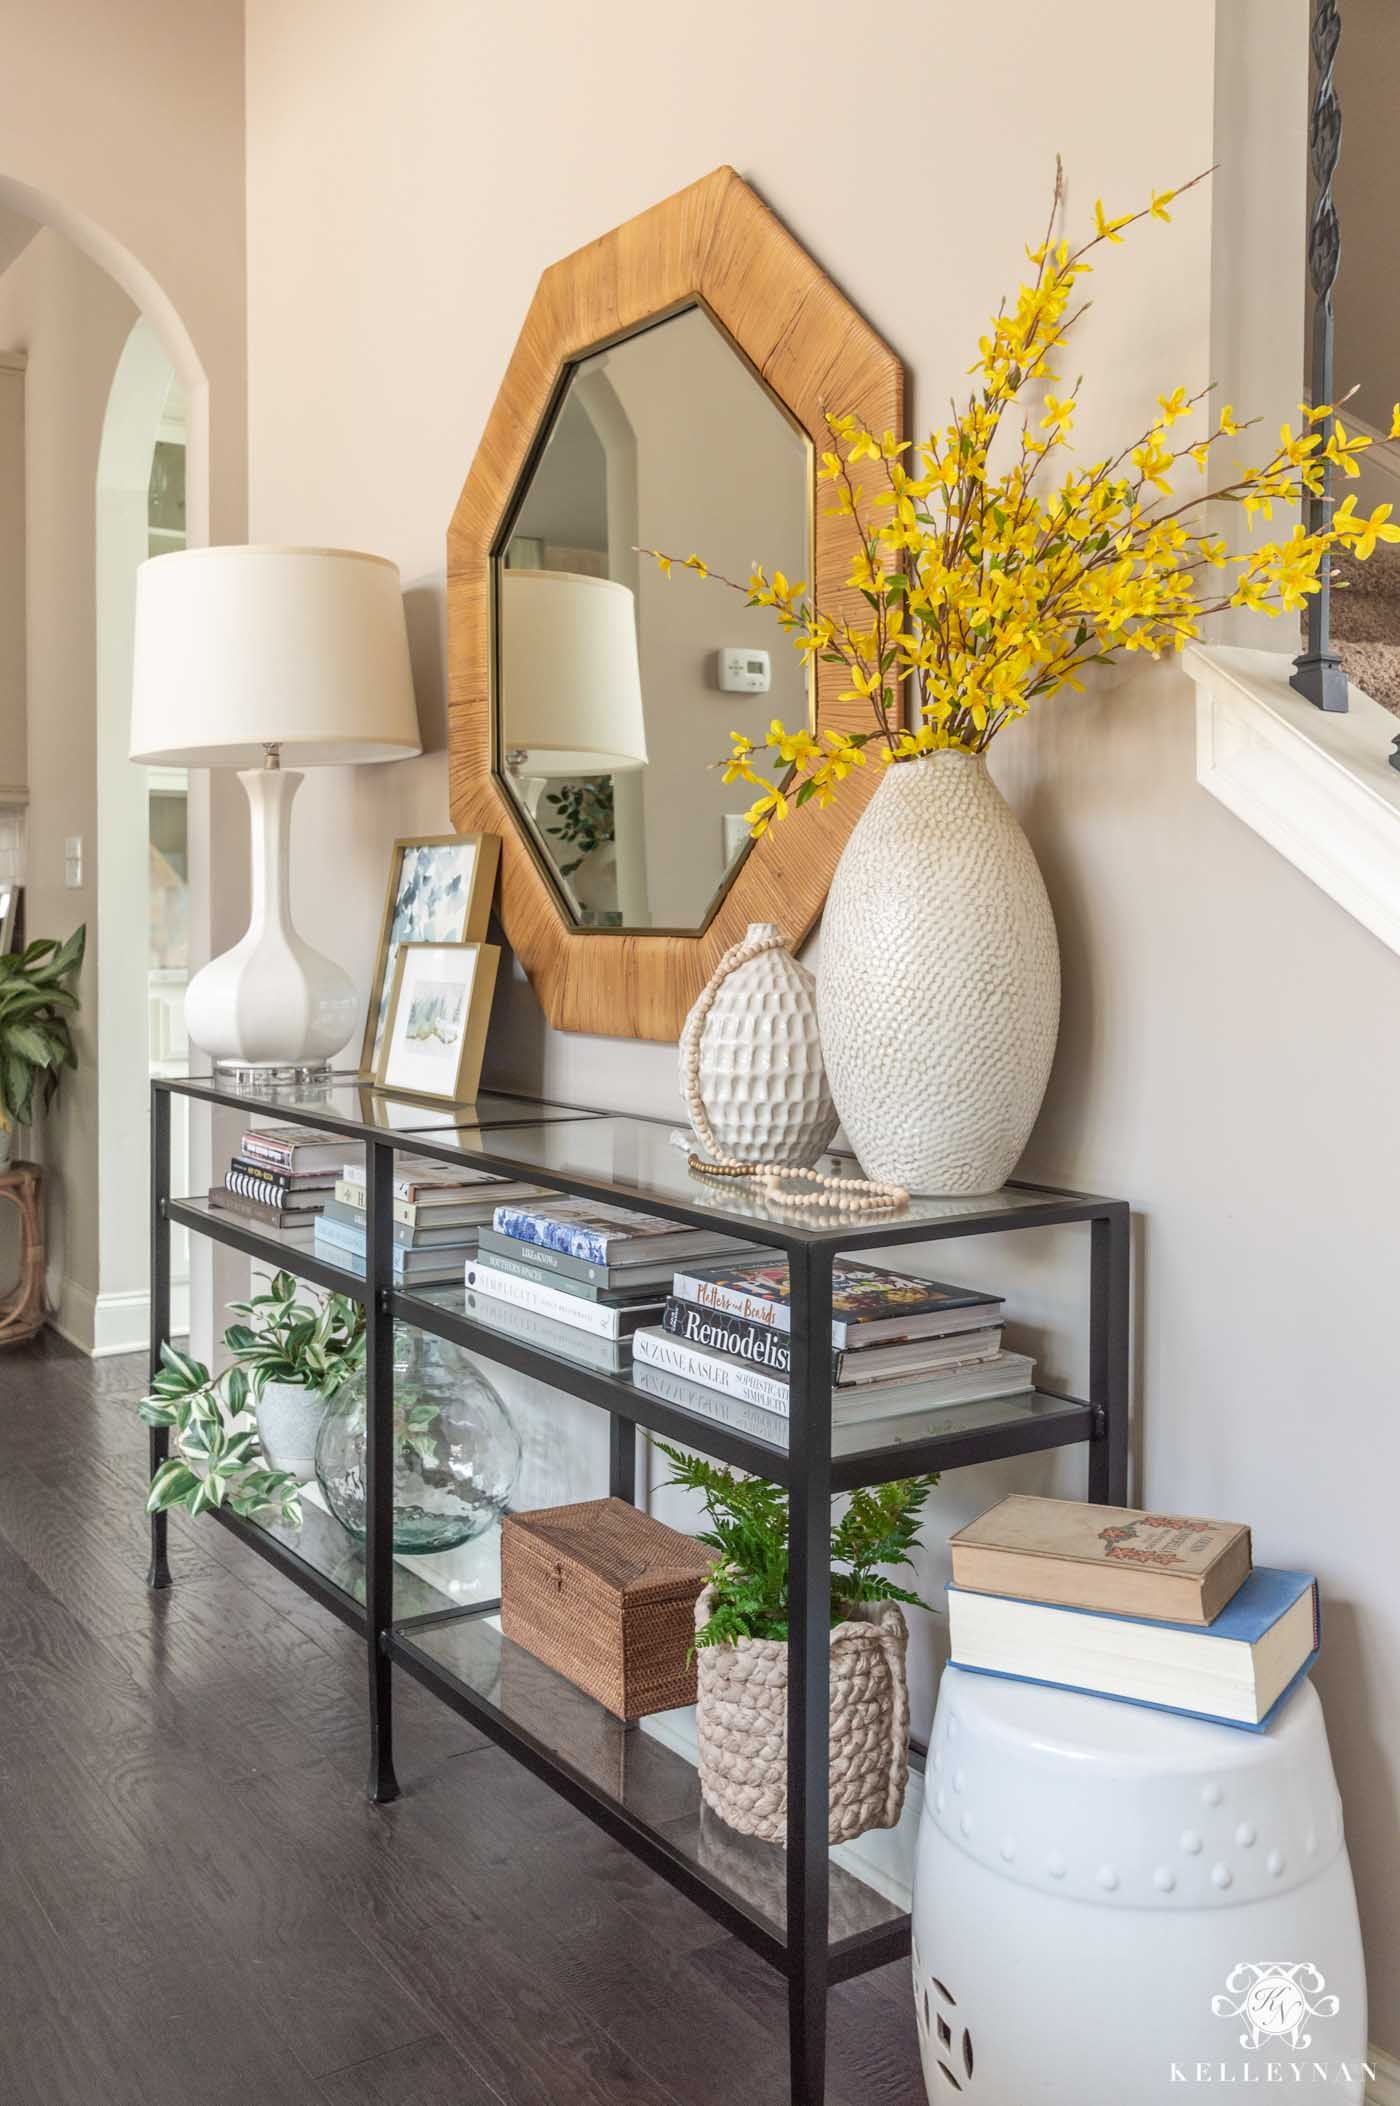 Simple Spring Home Decor Faux Flower Arranging Ideas Kelley Nan Console Table Living Room Console Table Decorating Spring Home Decor Living room console table ideas